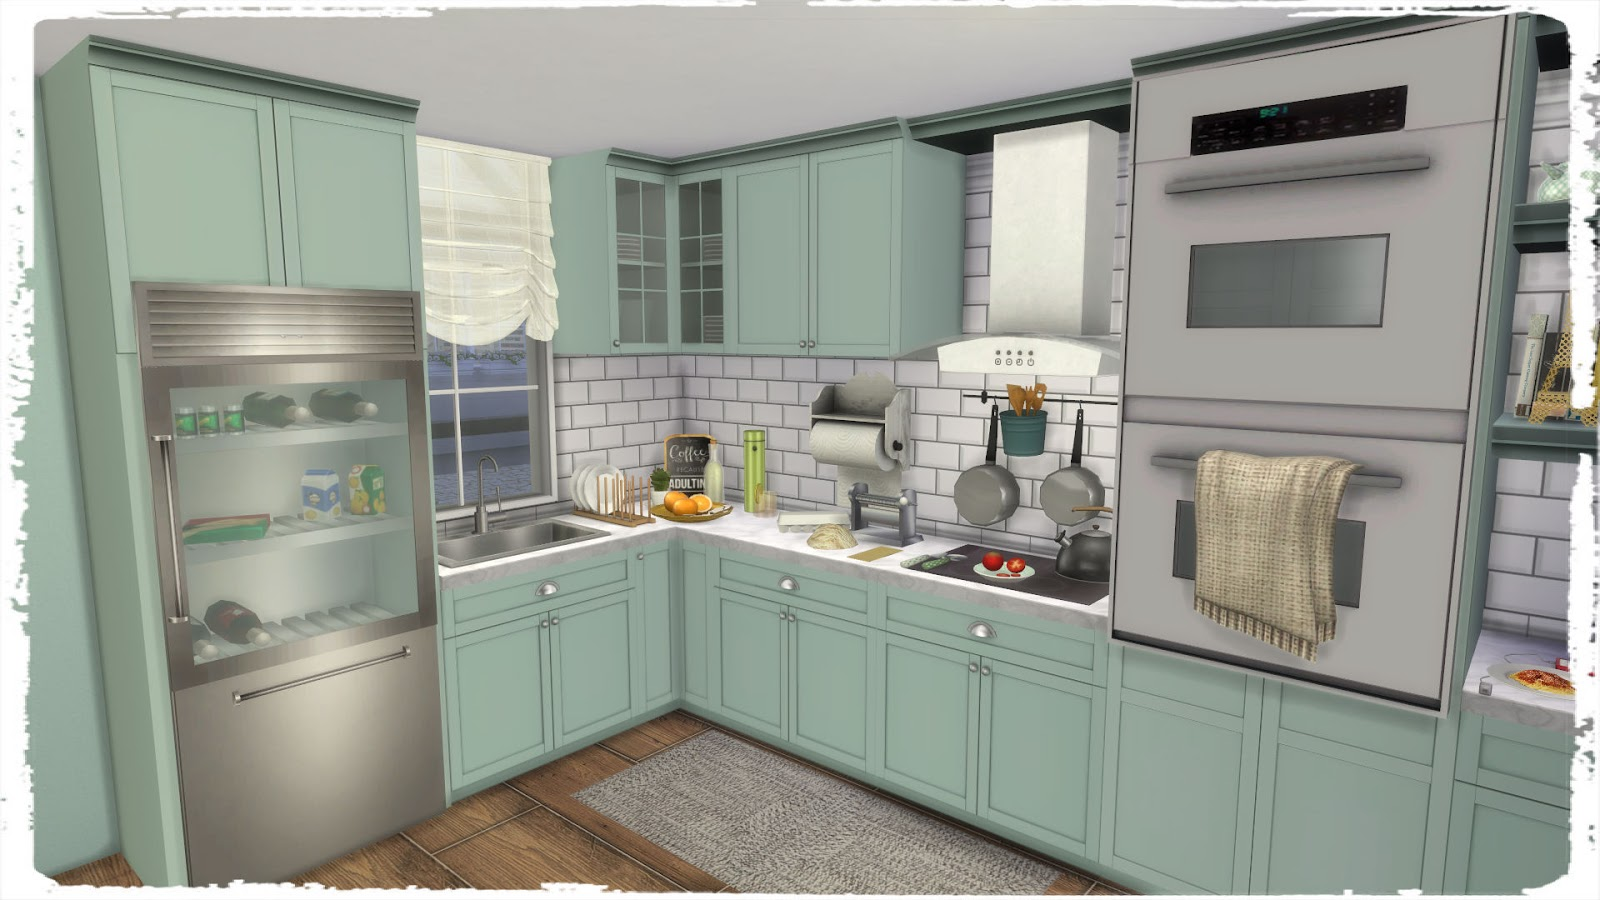 Sims 4 kitchen with laundry dinha